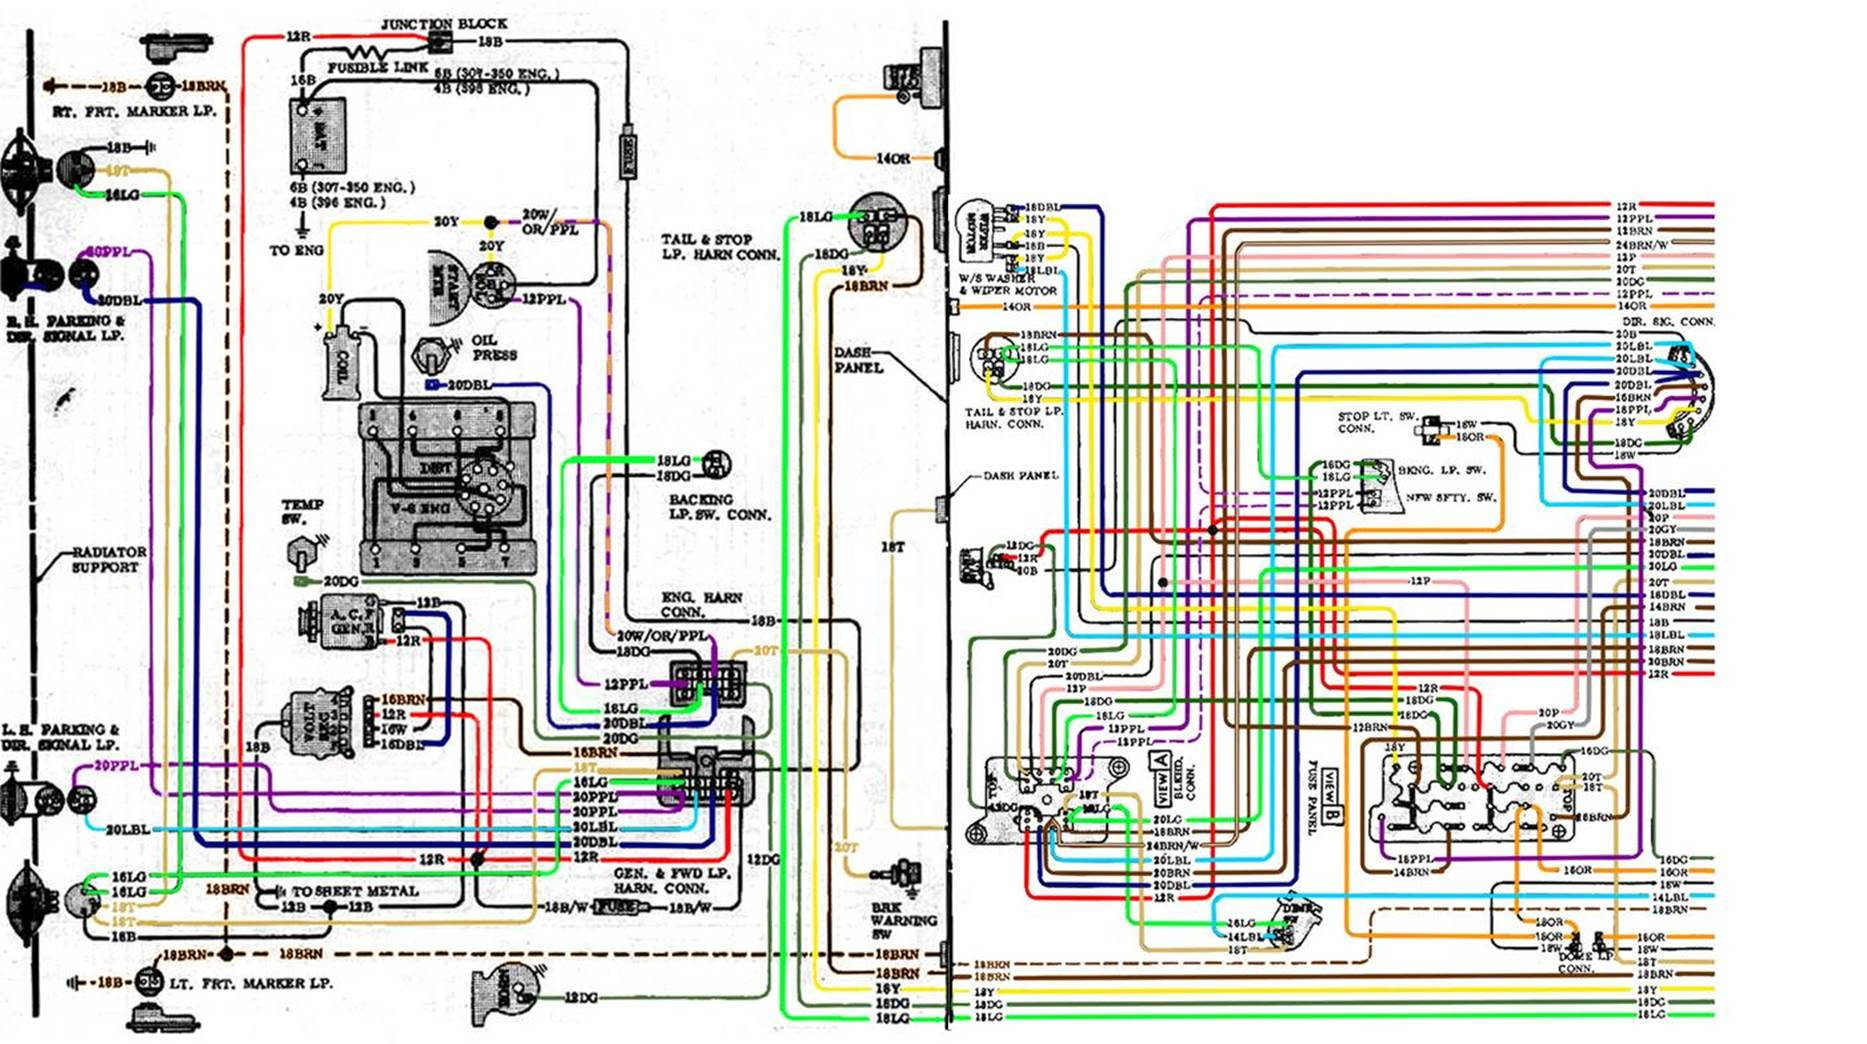 image002 67 72 chevy wiring diagram 1972 chevelle wiring diagram at webbmarketing.co